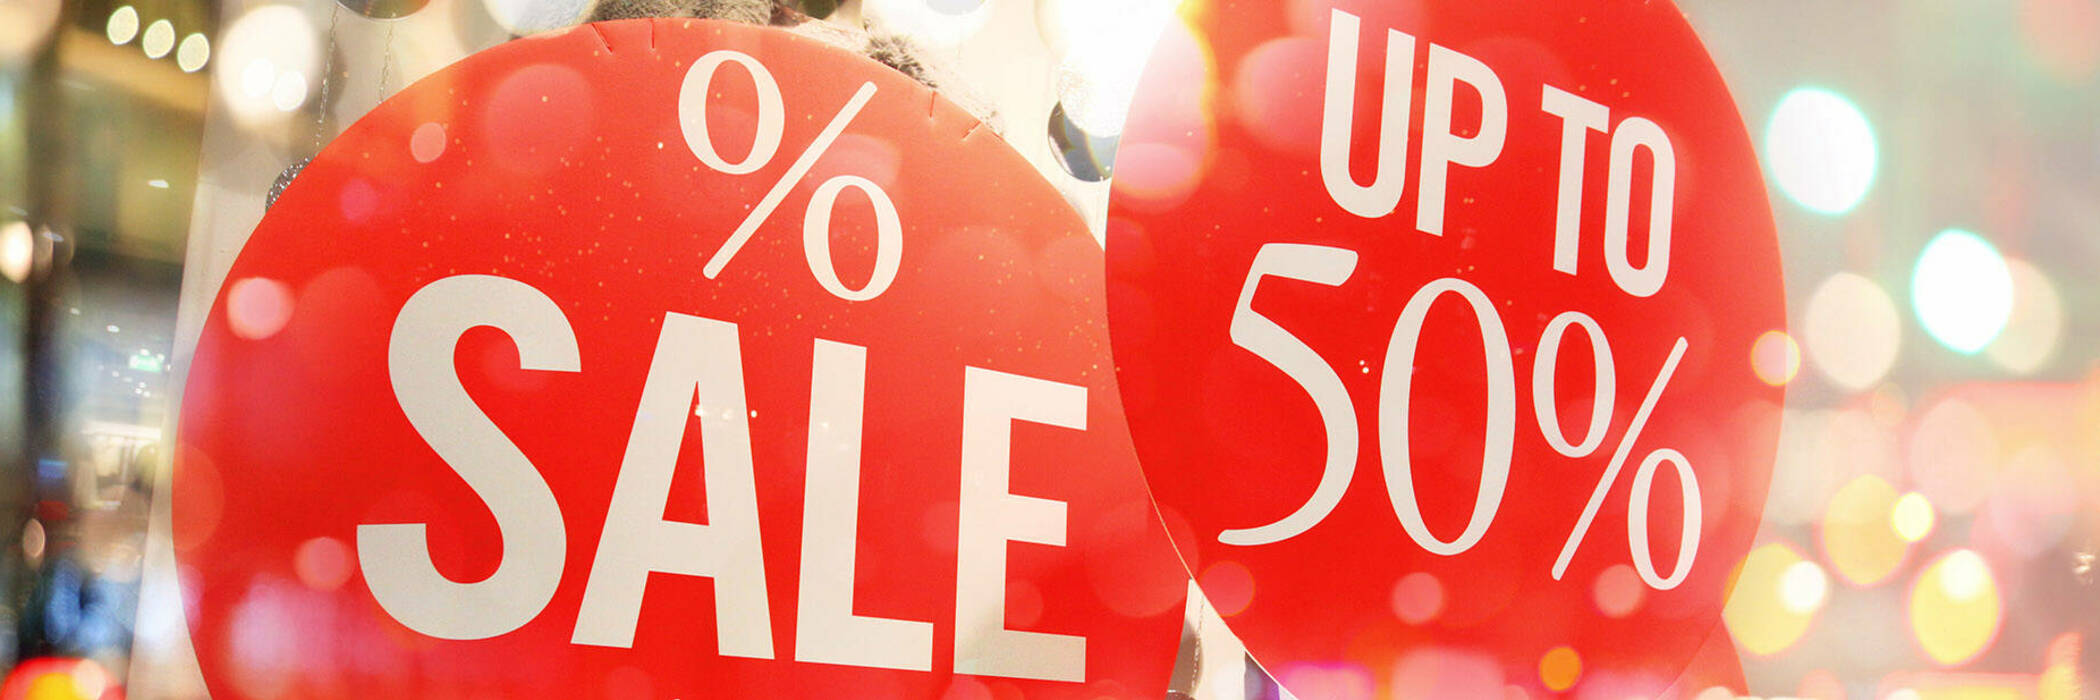 17may pricing practices misleading shoppers hero